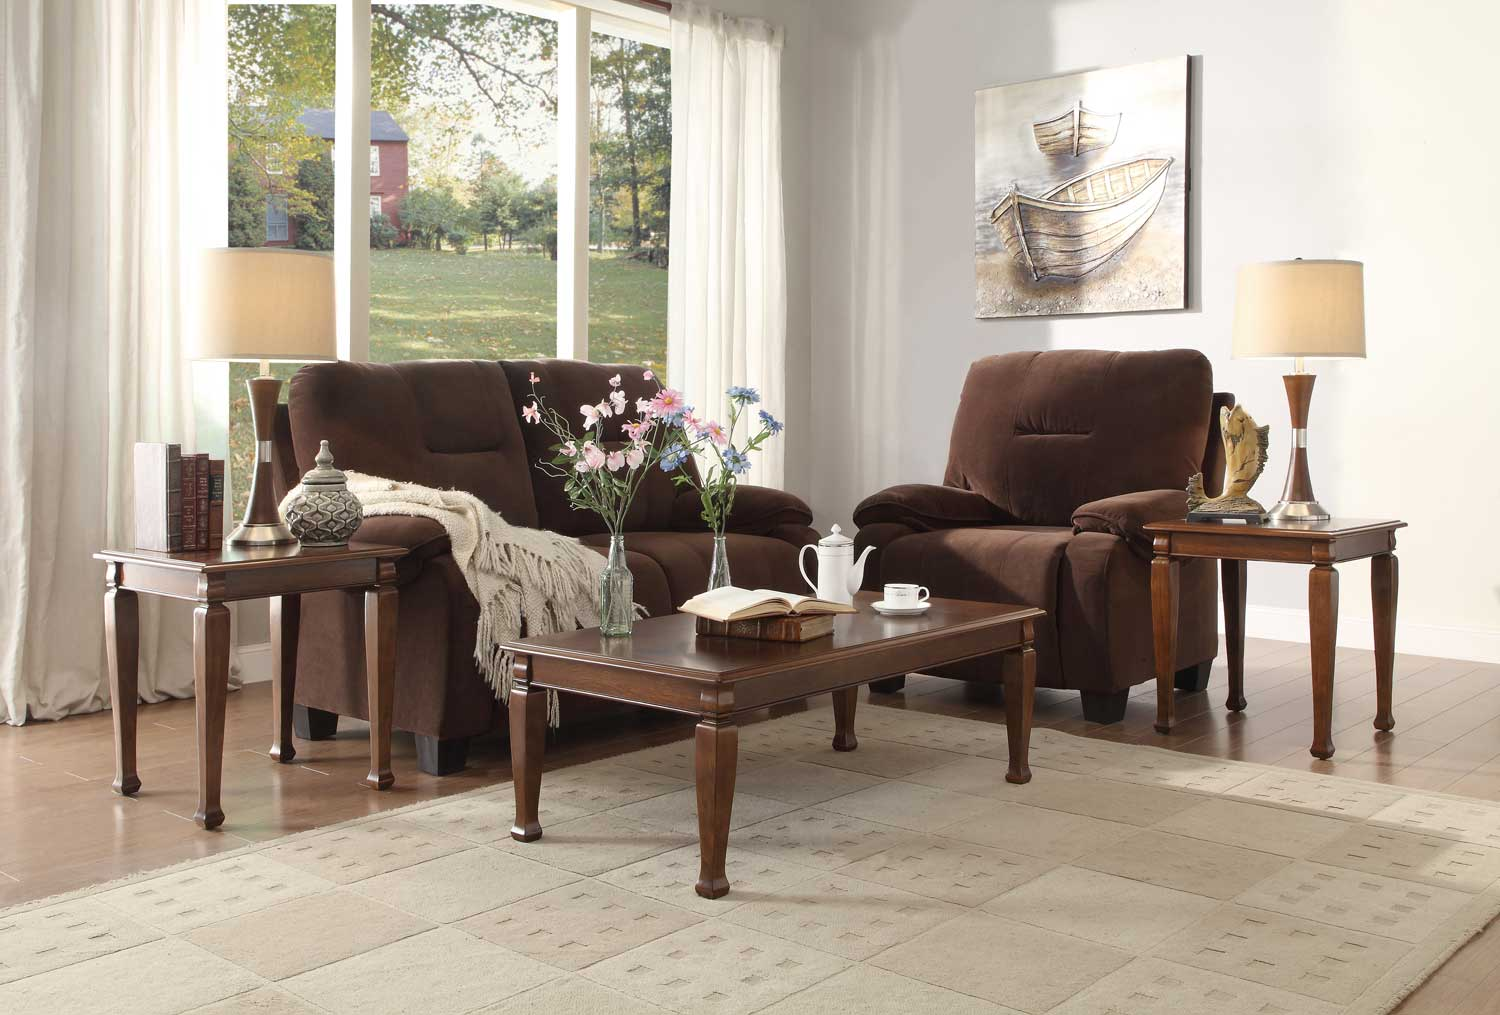 Homelegance Galligan 3-Piece Occasional Tables - Warm Brown Cherry